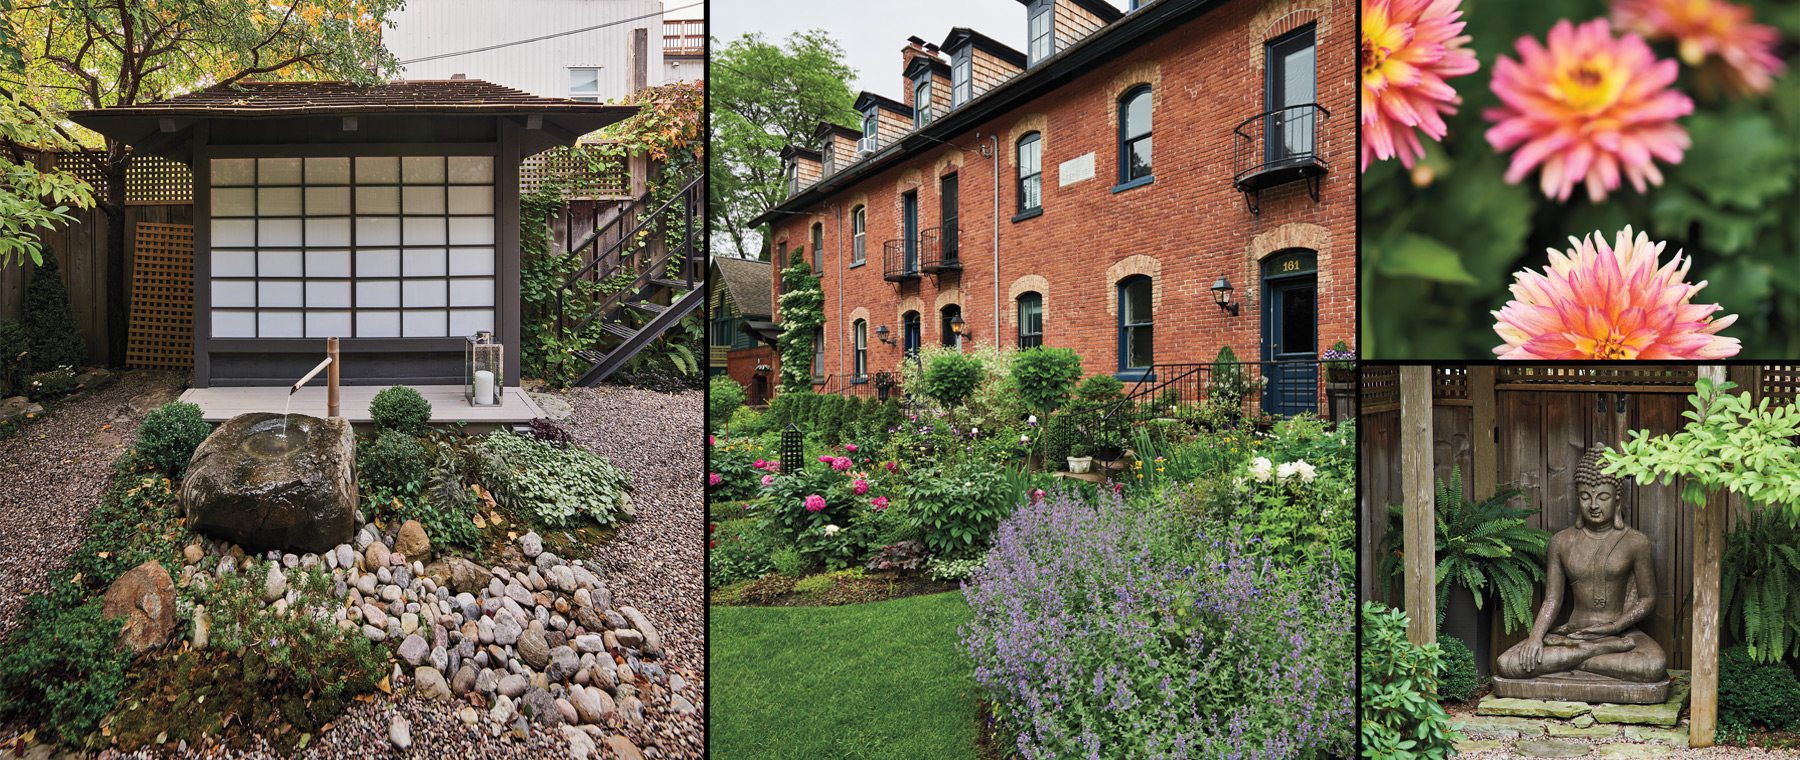 Designing an Urban Oasis: Tending Your Neighbours Garden